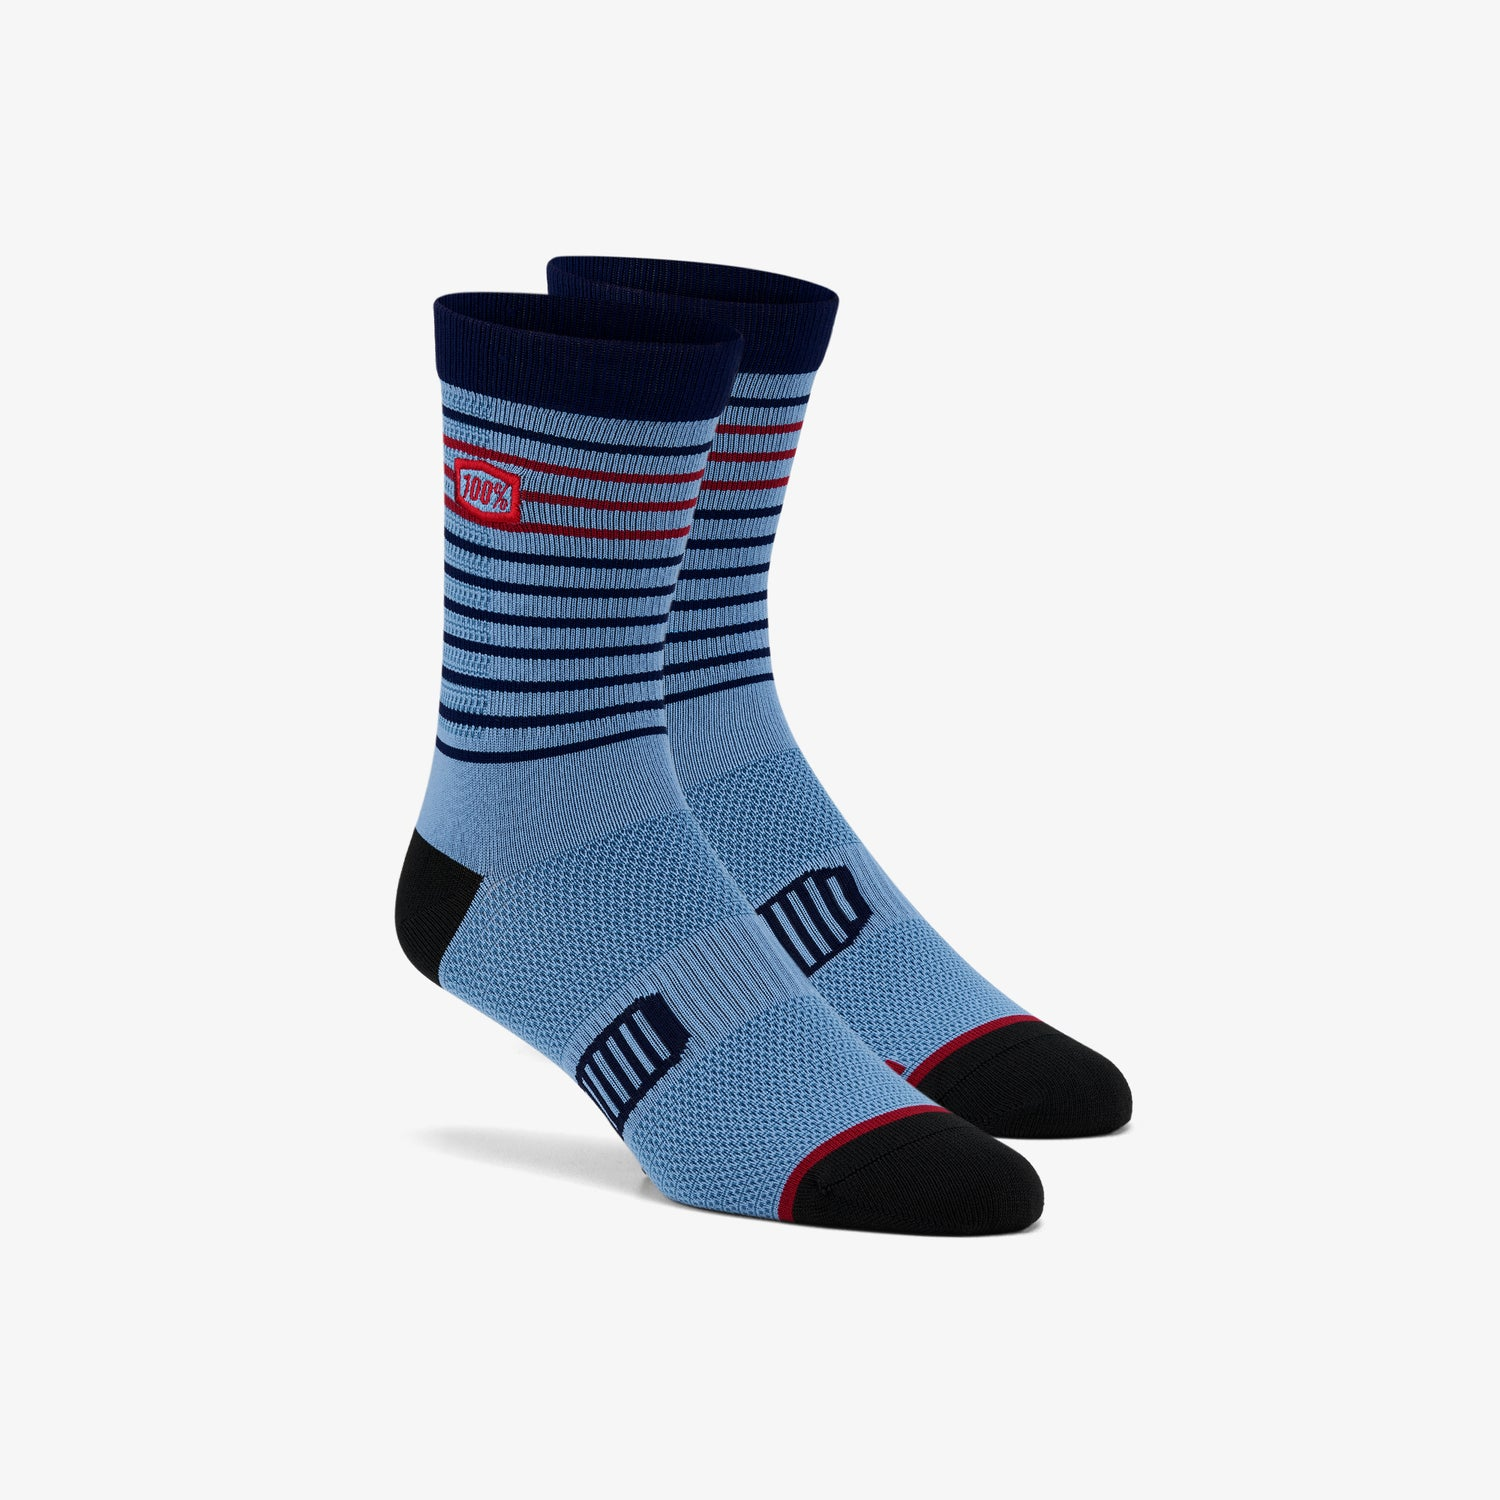 ADVOCATE Performance Socks - Blue